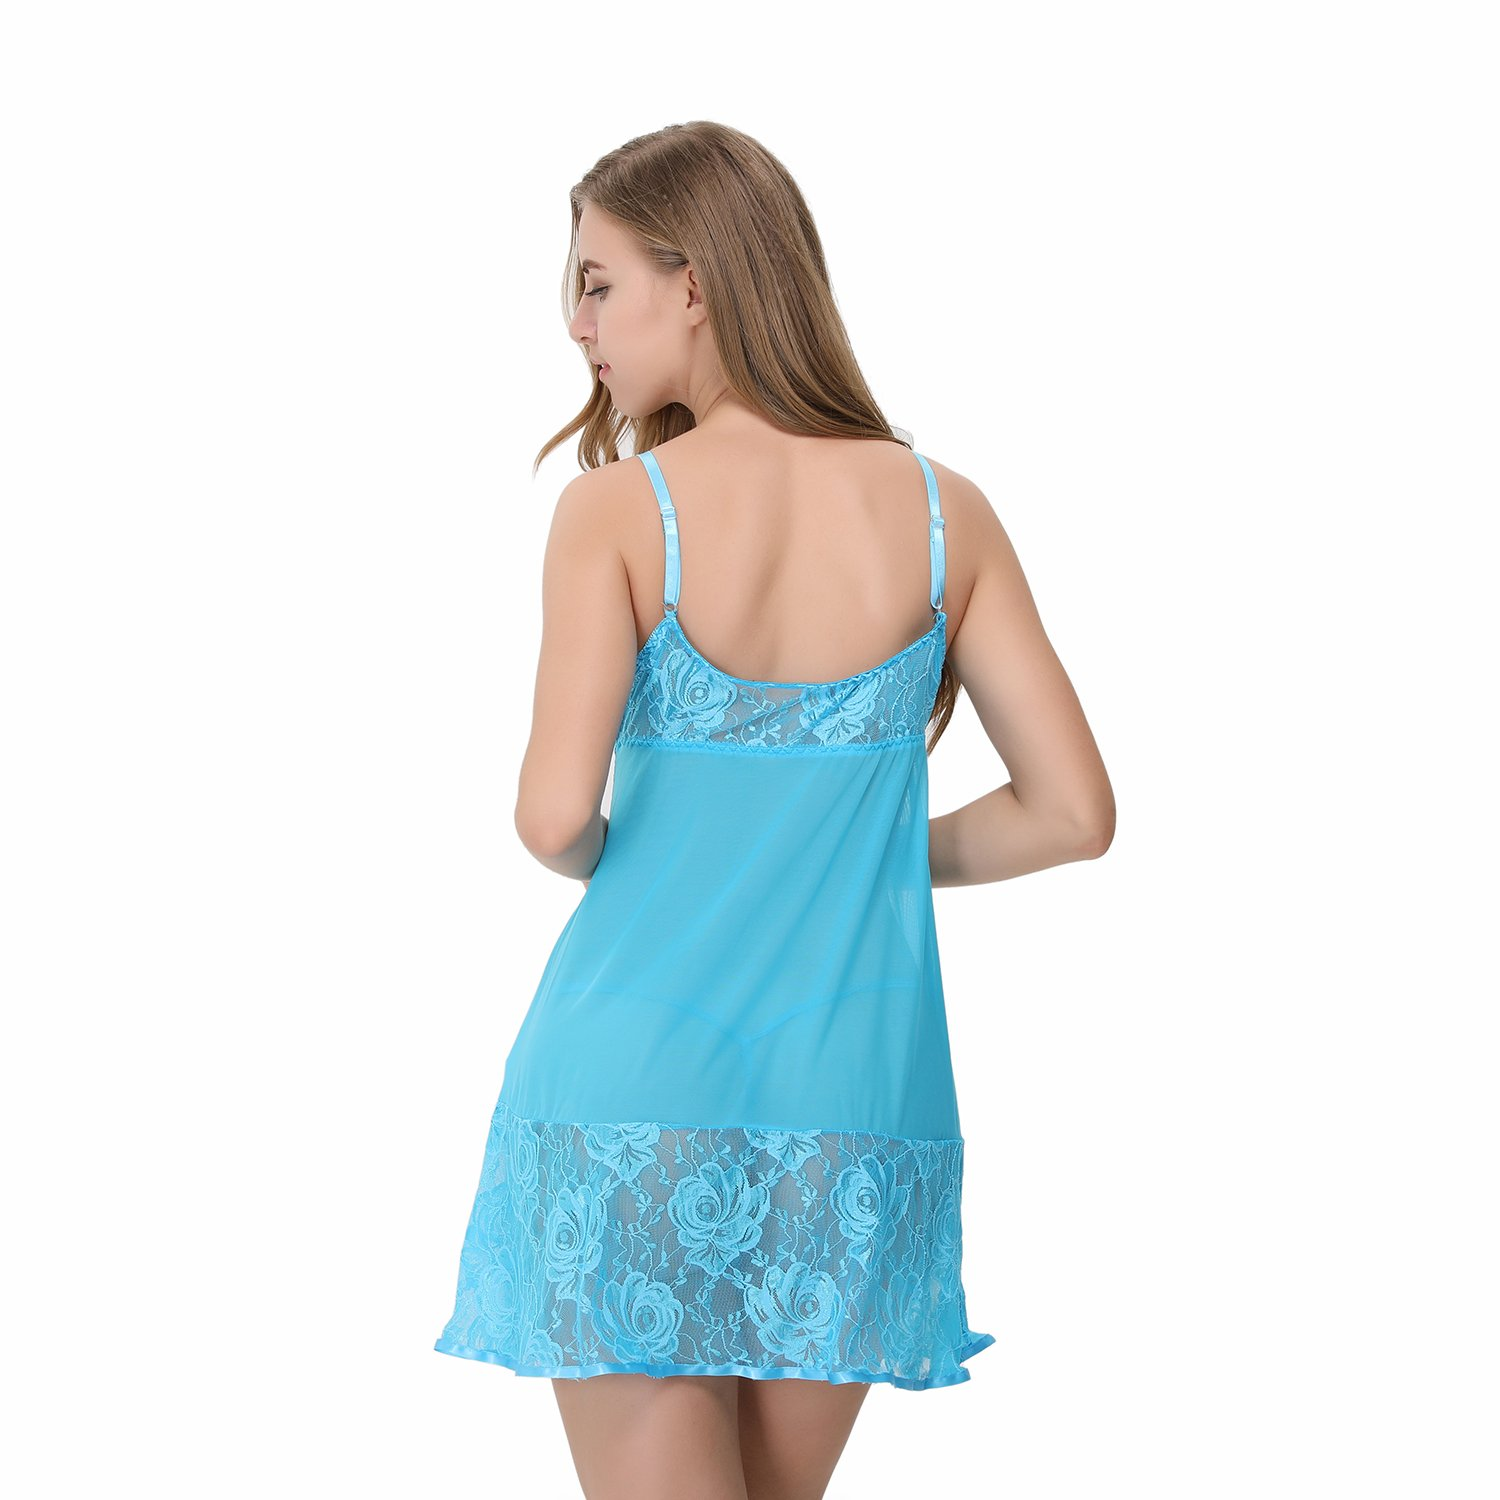 Advoult Women Babydolls Sexy Lingerie Nighty Lace Sleepwear Mesh Chemise Outfits by Advoult (Image #4)